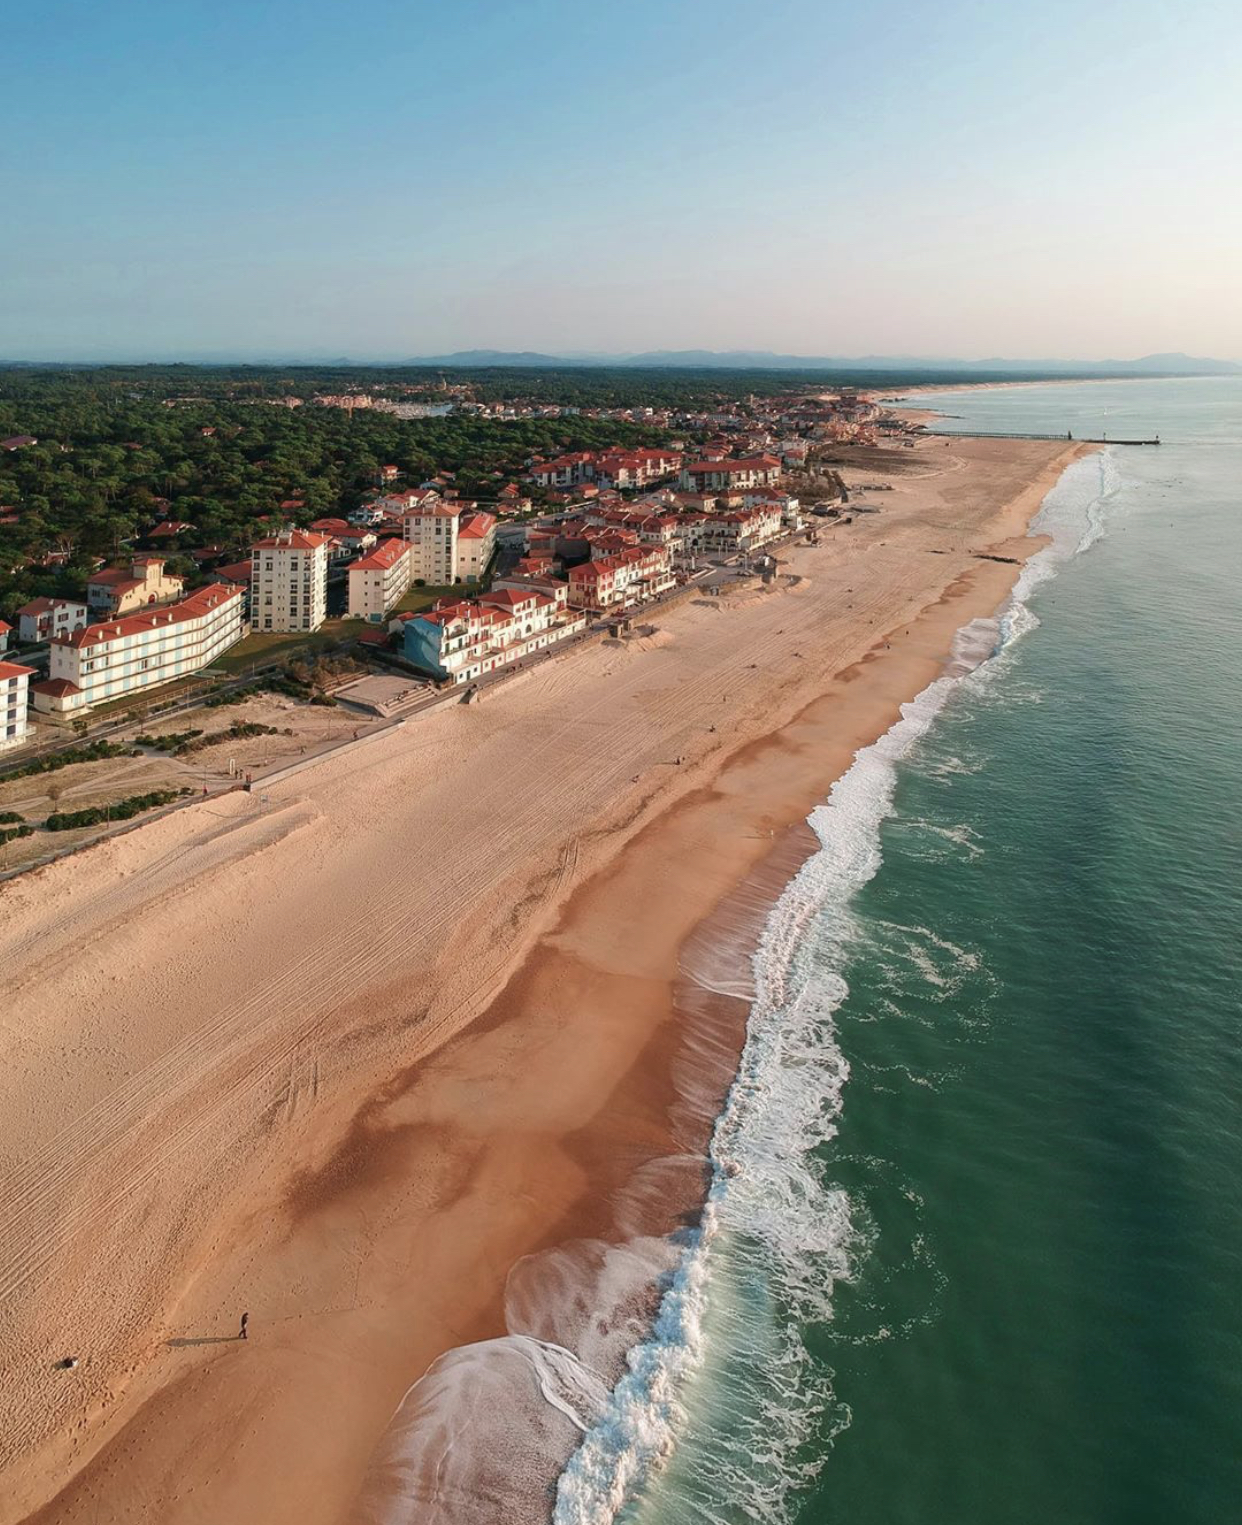 Weekday Wanderlust | Places: Soorts-Hossegor, Nouvelle-Aquitaine, Southwest France